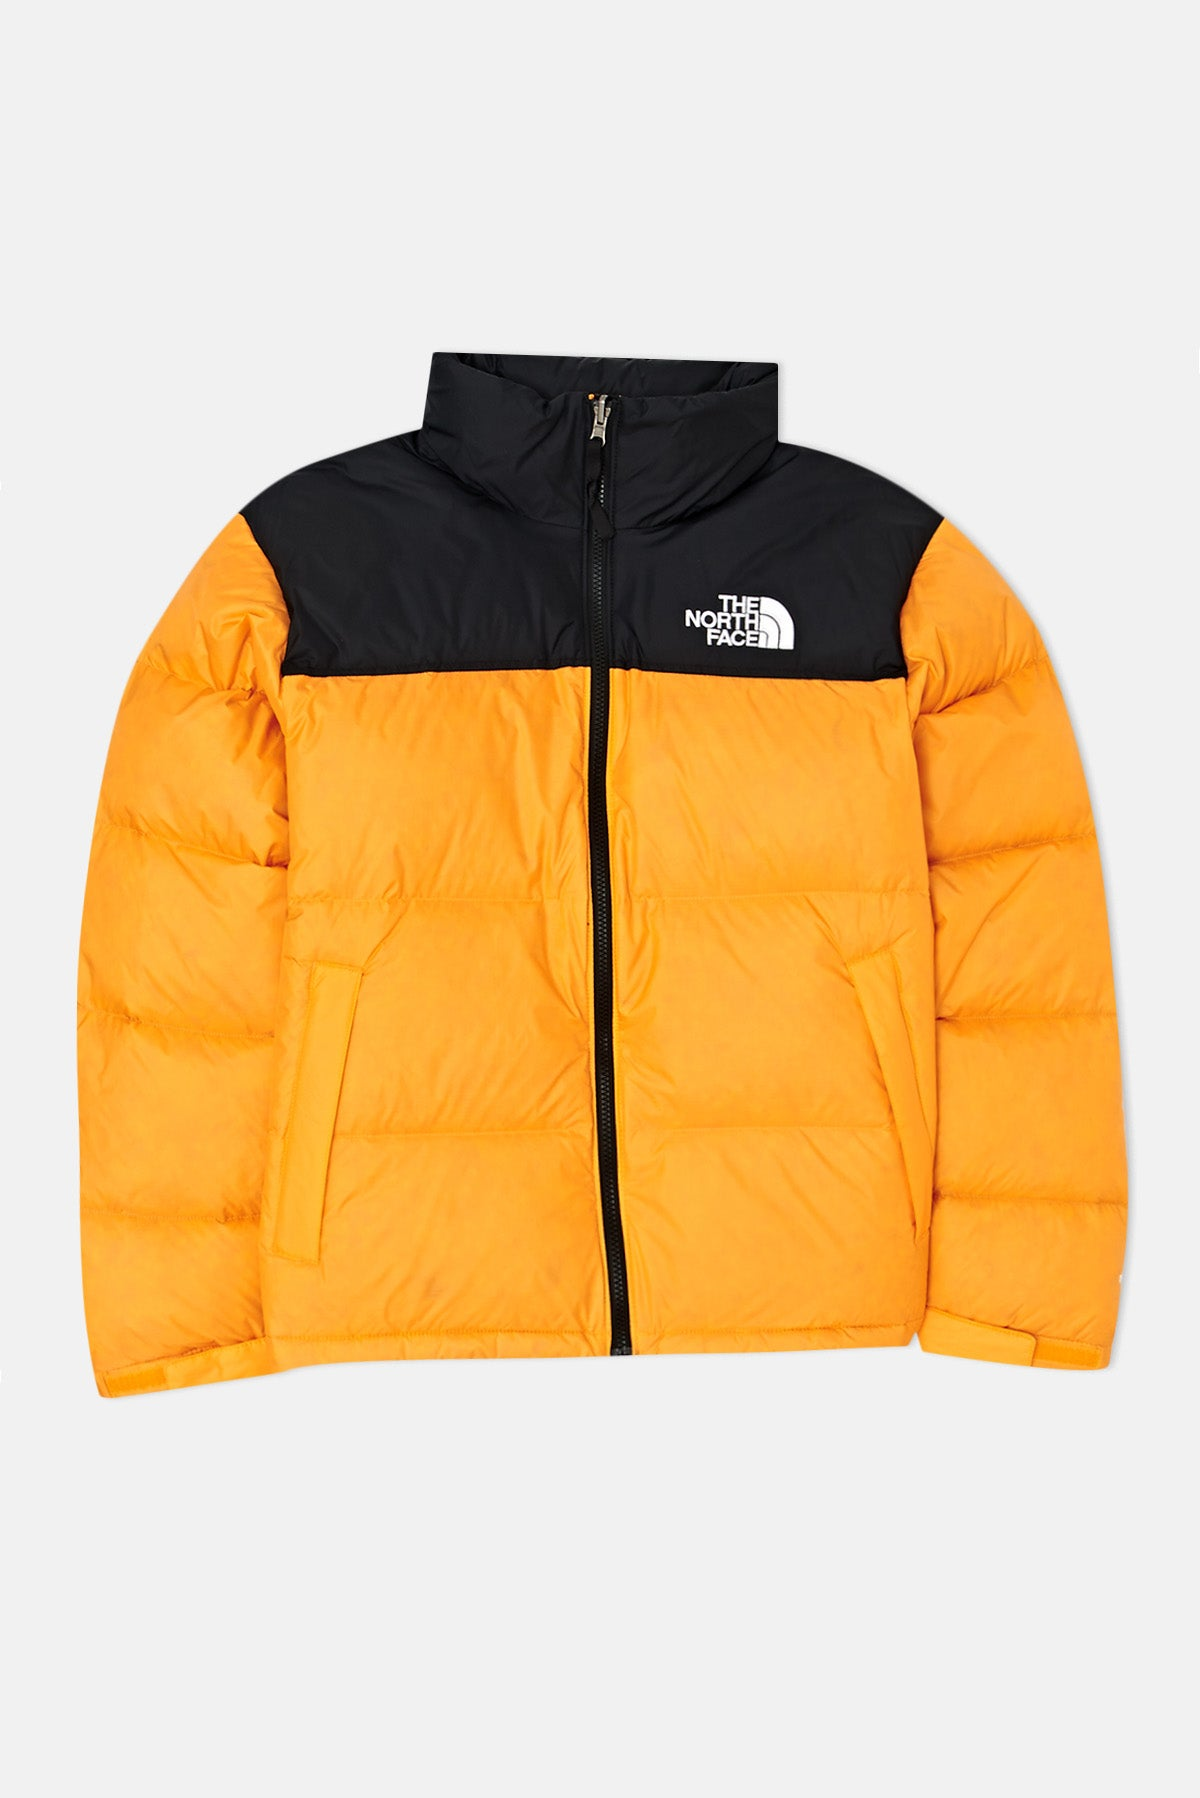 47d2f900c3 North Face Capsule M 1996 Retro Nuptse Jacket available from Priory